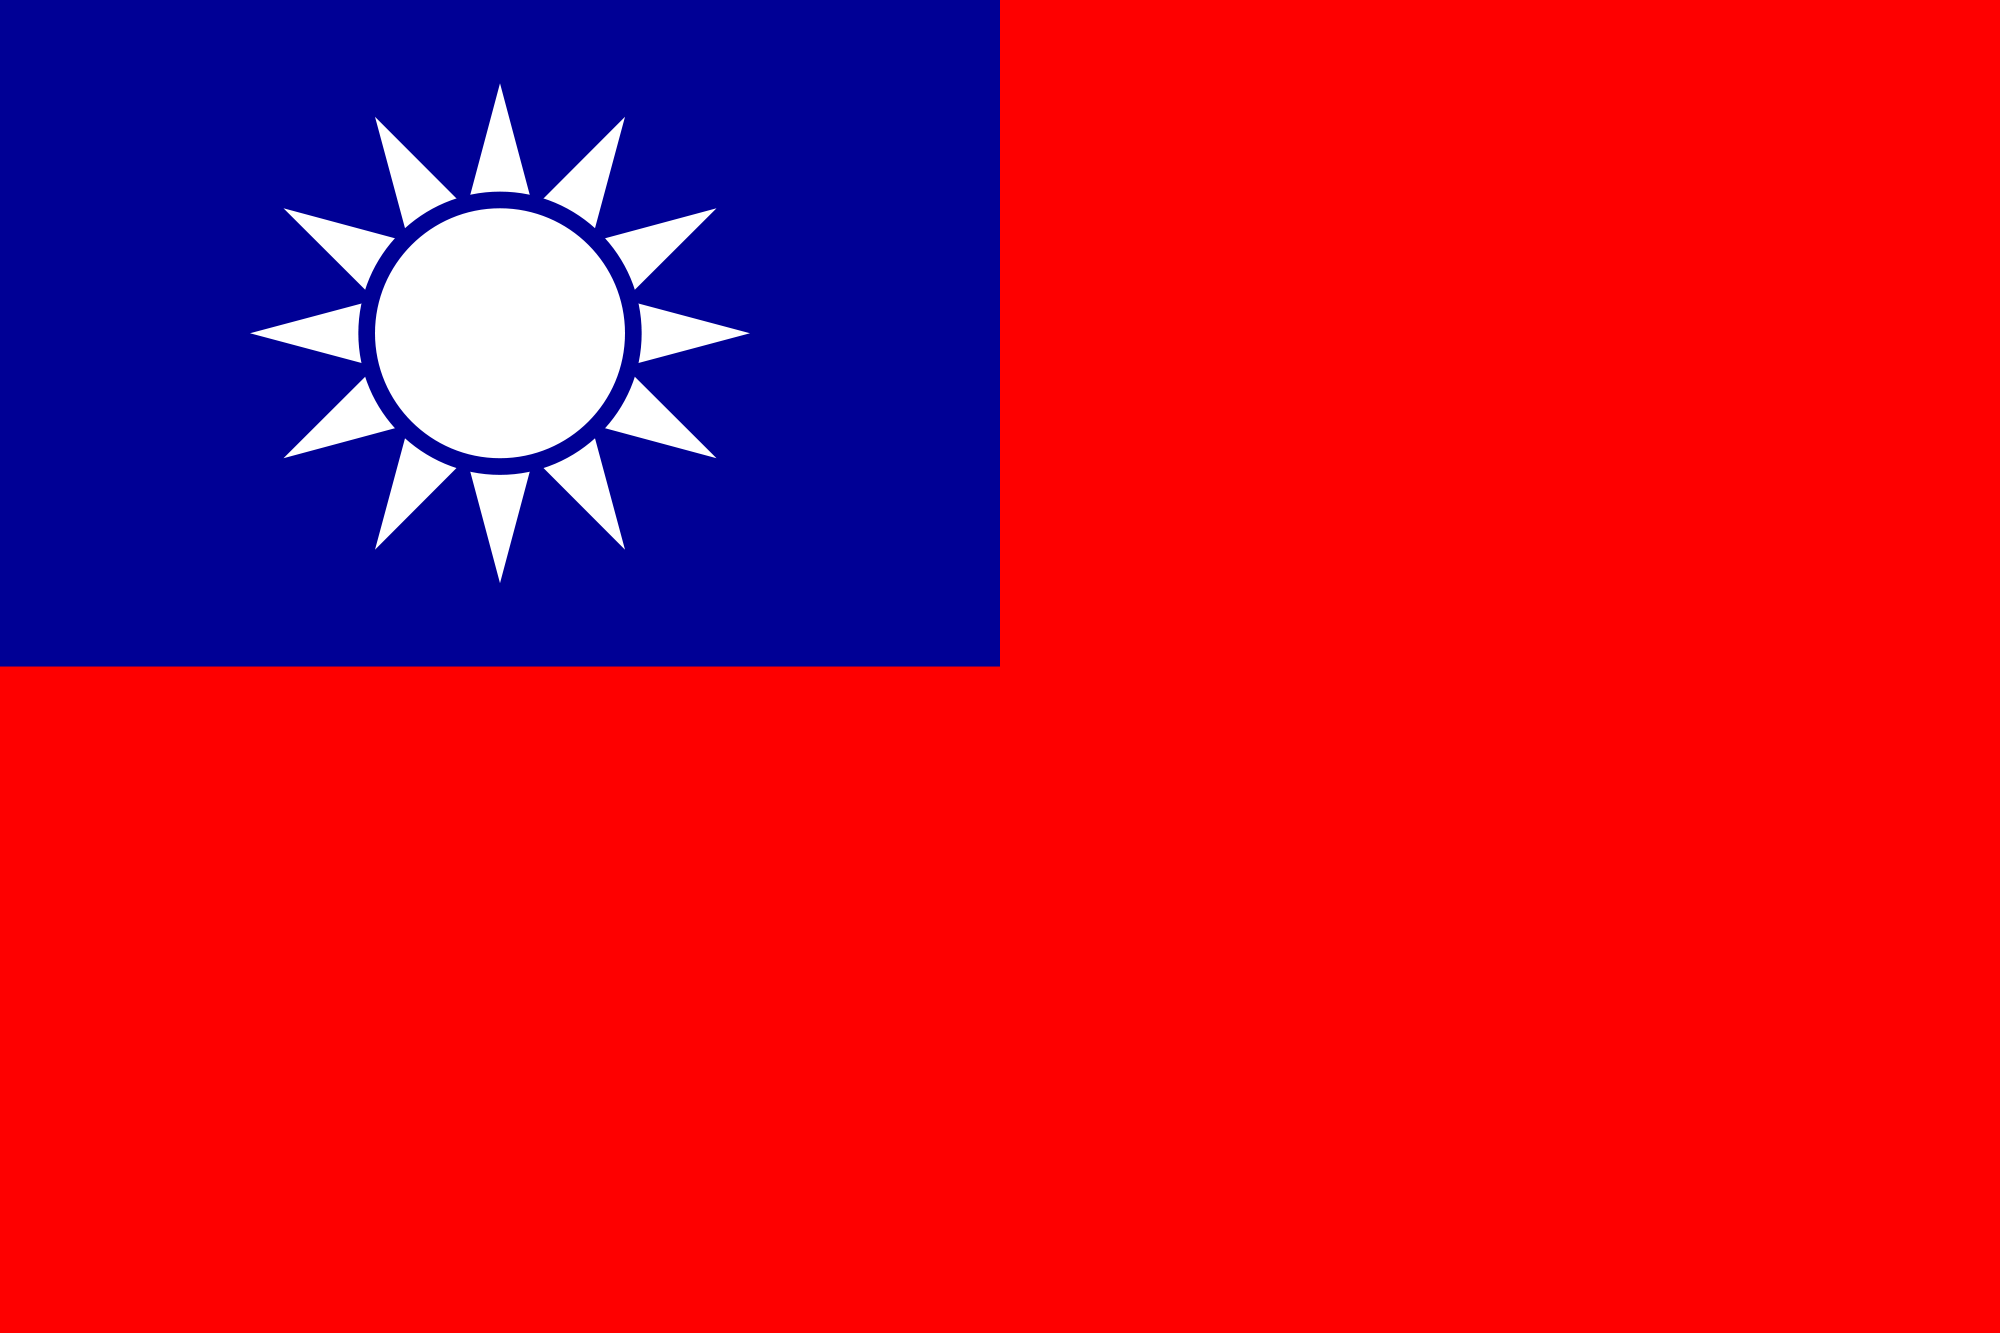 Taiwan (Republic of China)